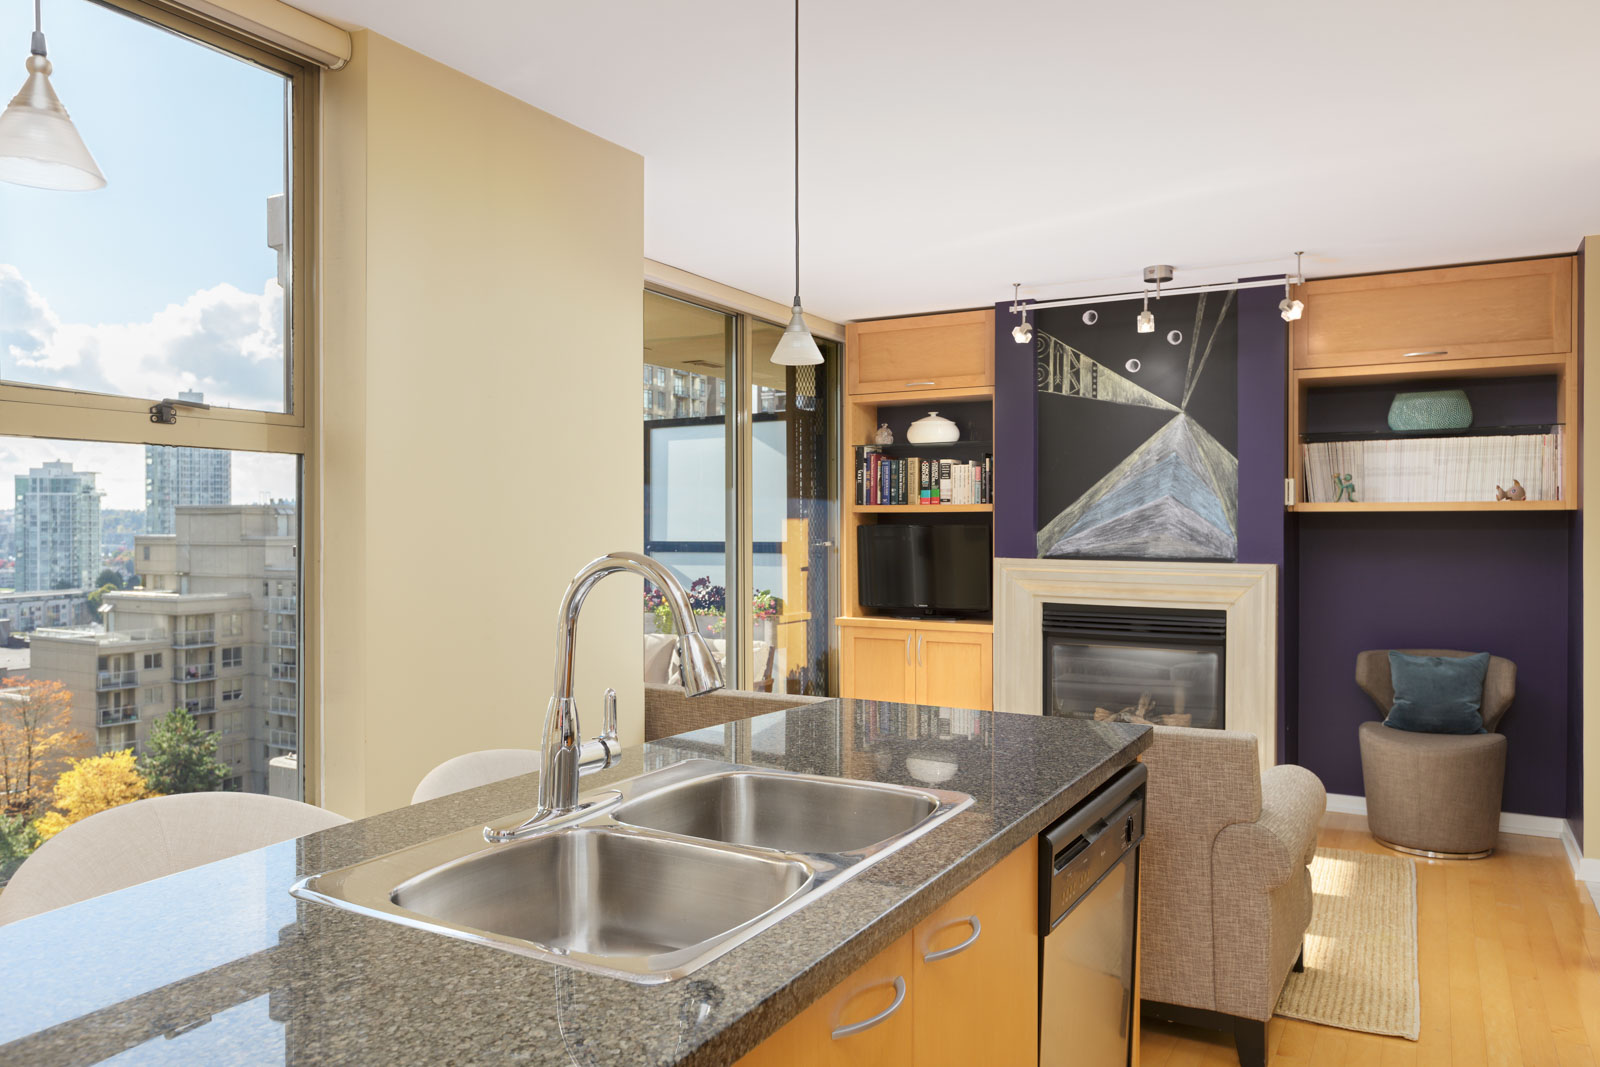 view of upscale Vancouver condo with yellow walls